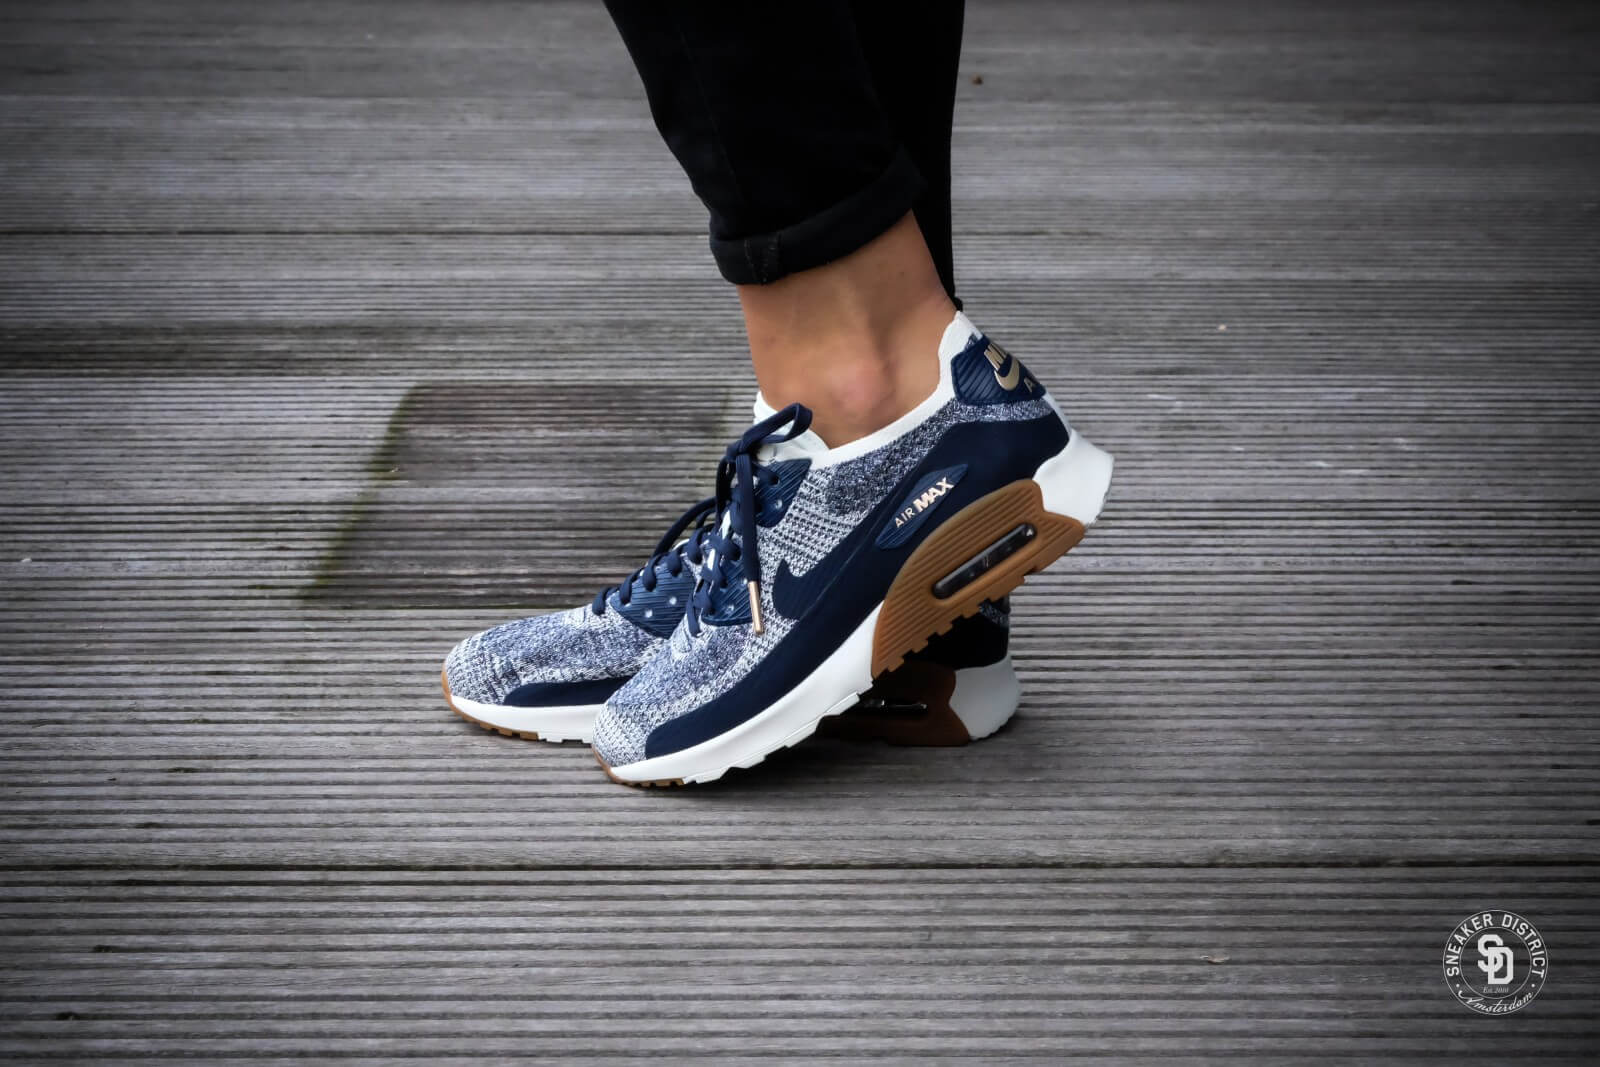 new arrival 4a64c b705a ... promo code for nike w air max 90 ultra 2.0 flyknit college navy gum med  brown